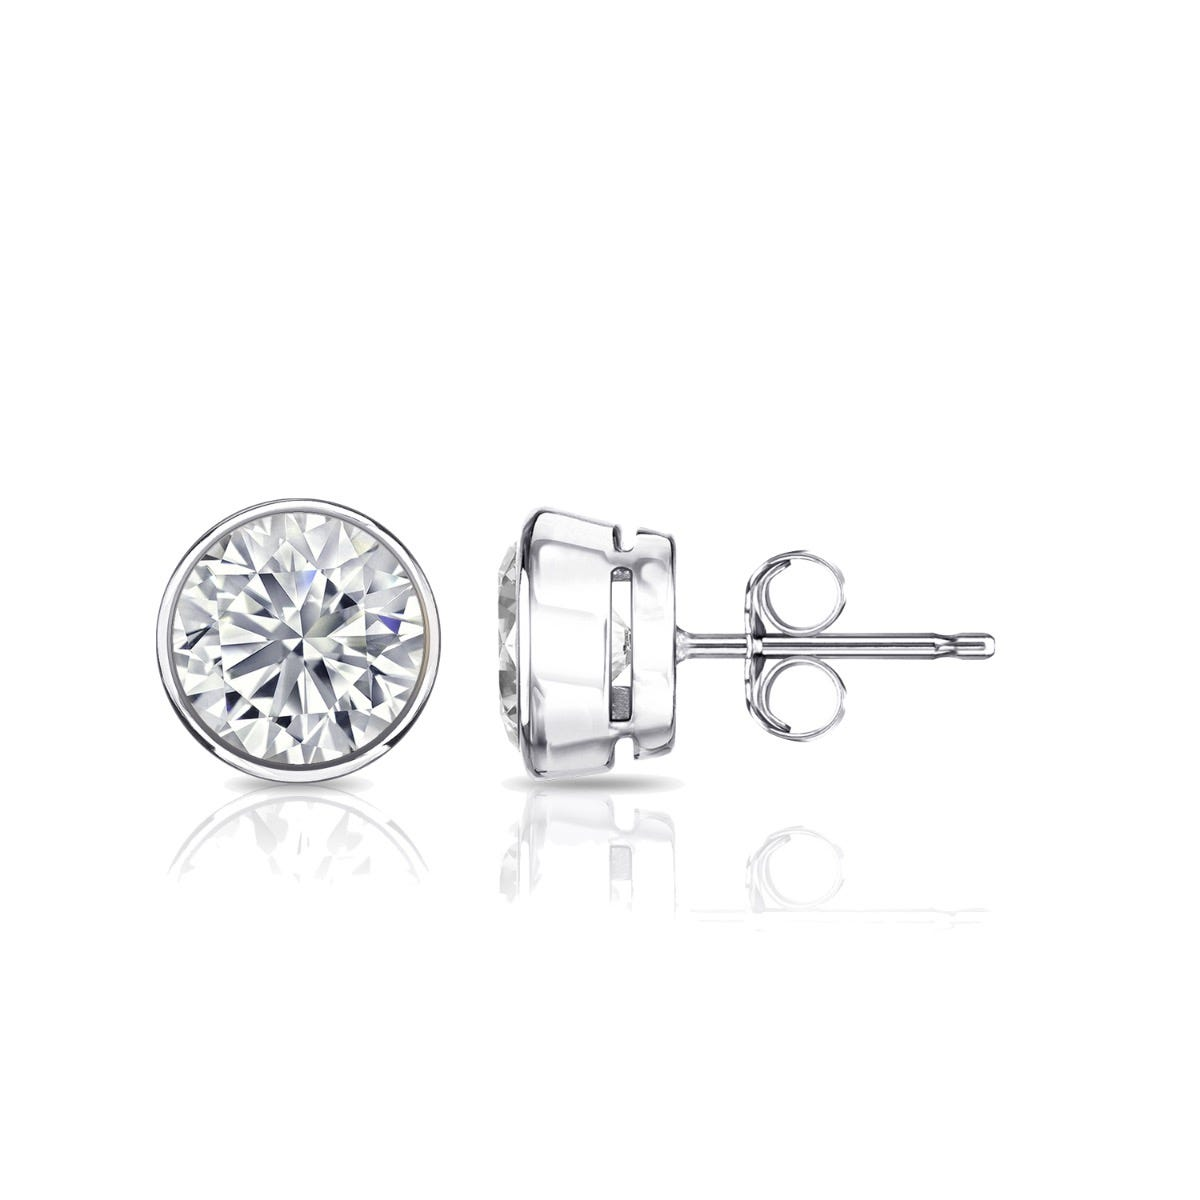 Diamond Round Bezel-Set 1ctw. Solitaire Stud (IJ-I2) Earrings in 14K White Gold